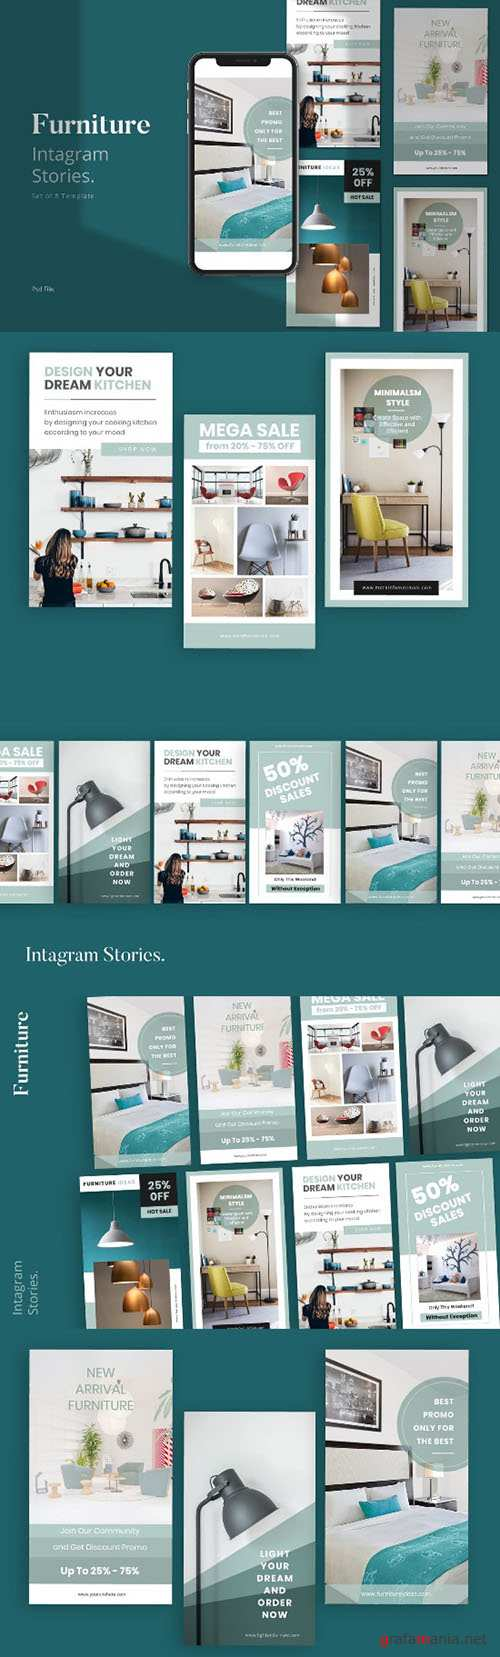 Furniture Social Media Instagram Stories Template PSD